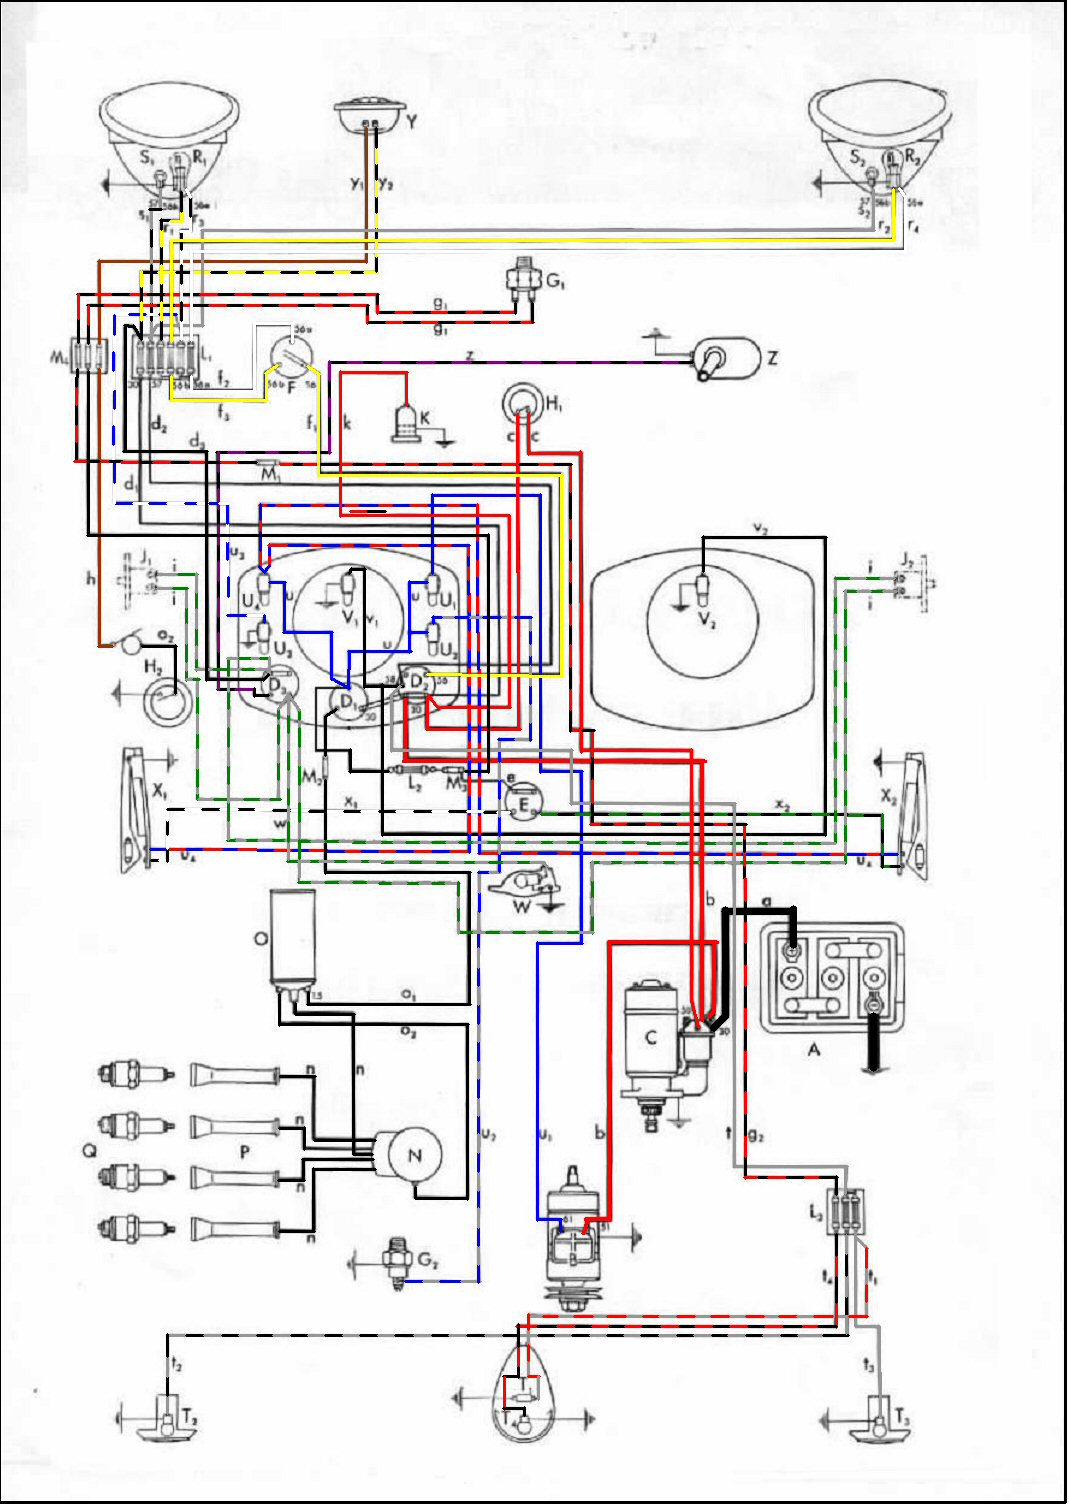 Type 1 Wiring Diagrams 1971 Super Beetle Fuse Box